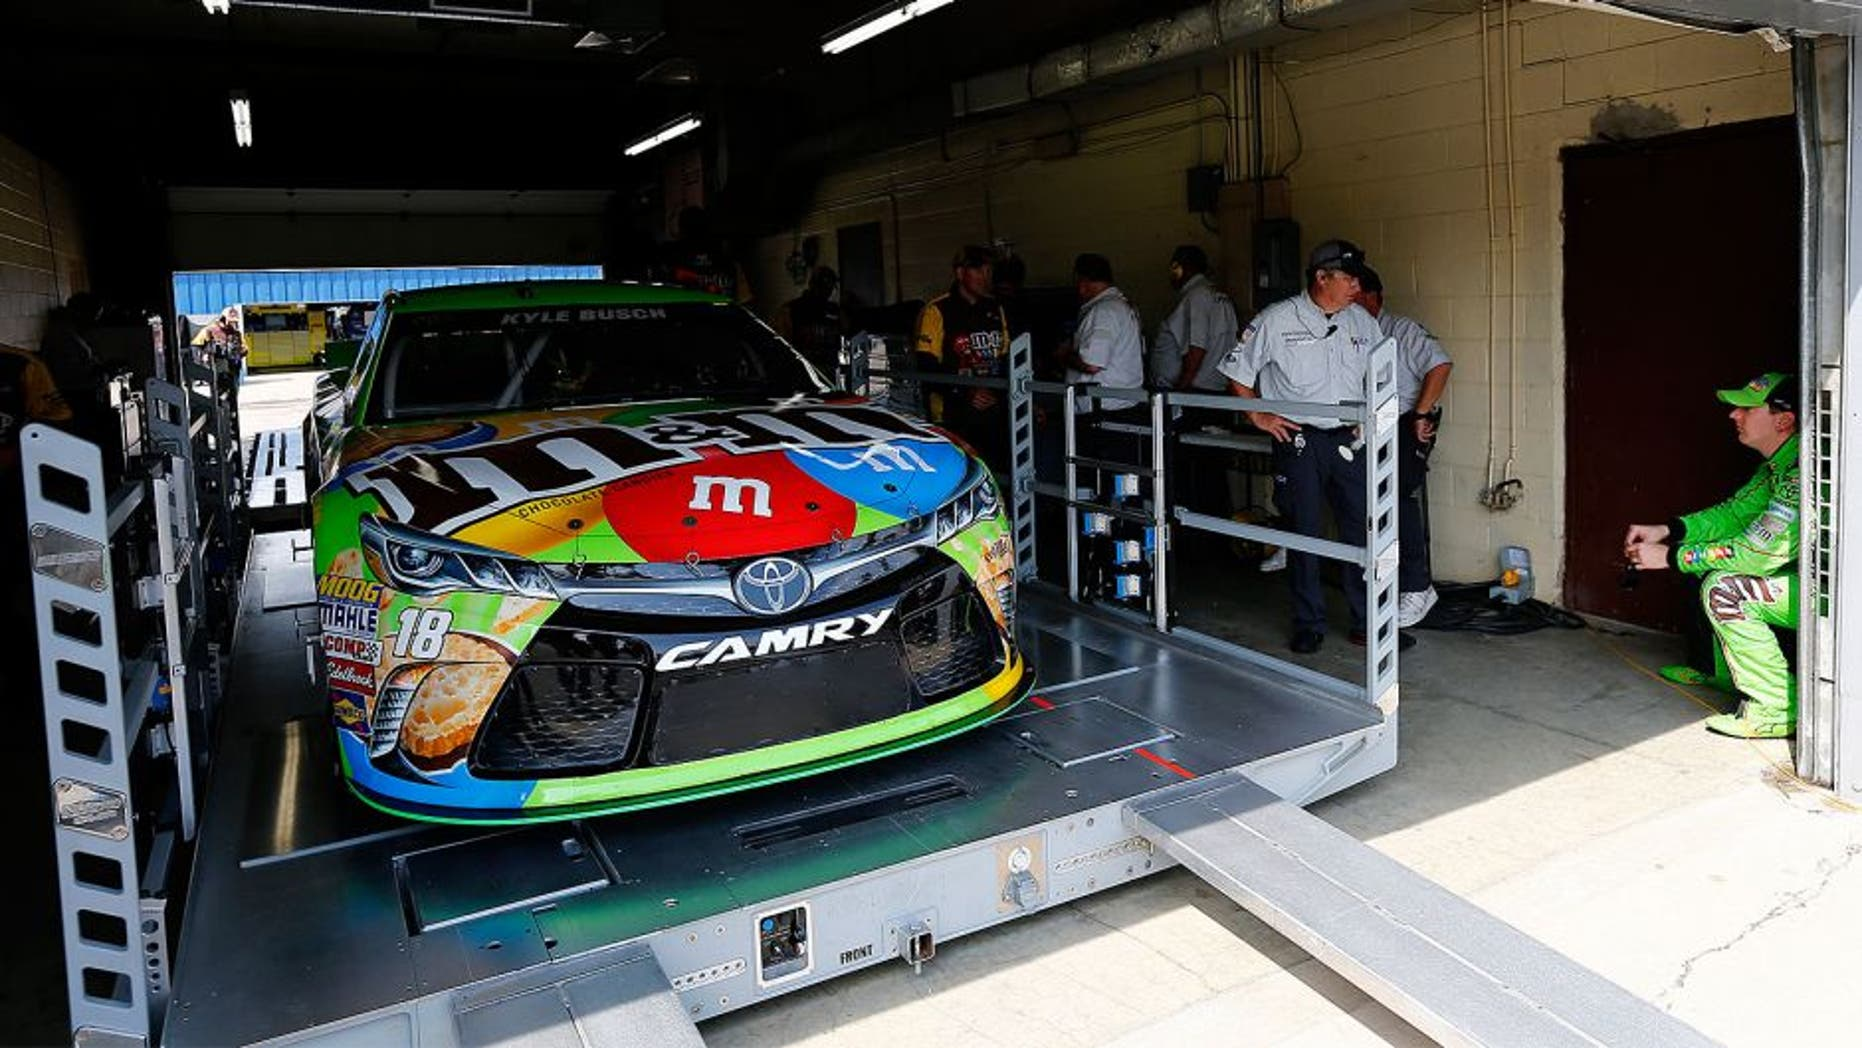 BROOKLYN, MI - JUNE 12: Kyle Busch, driver of the #18 M&M's Crispy Toyota, waits as his car goes through technical inspection prior to qualifying for the NASCAR Sprint Cup Series Quicken Loans 400 at Michigan International Speedway on June 12, 2015 in Brooklyn, Michigan. (Photo by Jonathan Ferrey/NASCAR via Getty Images)